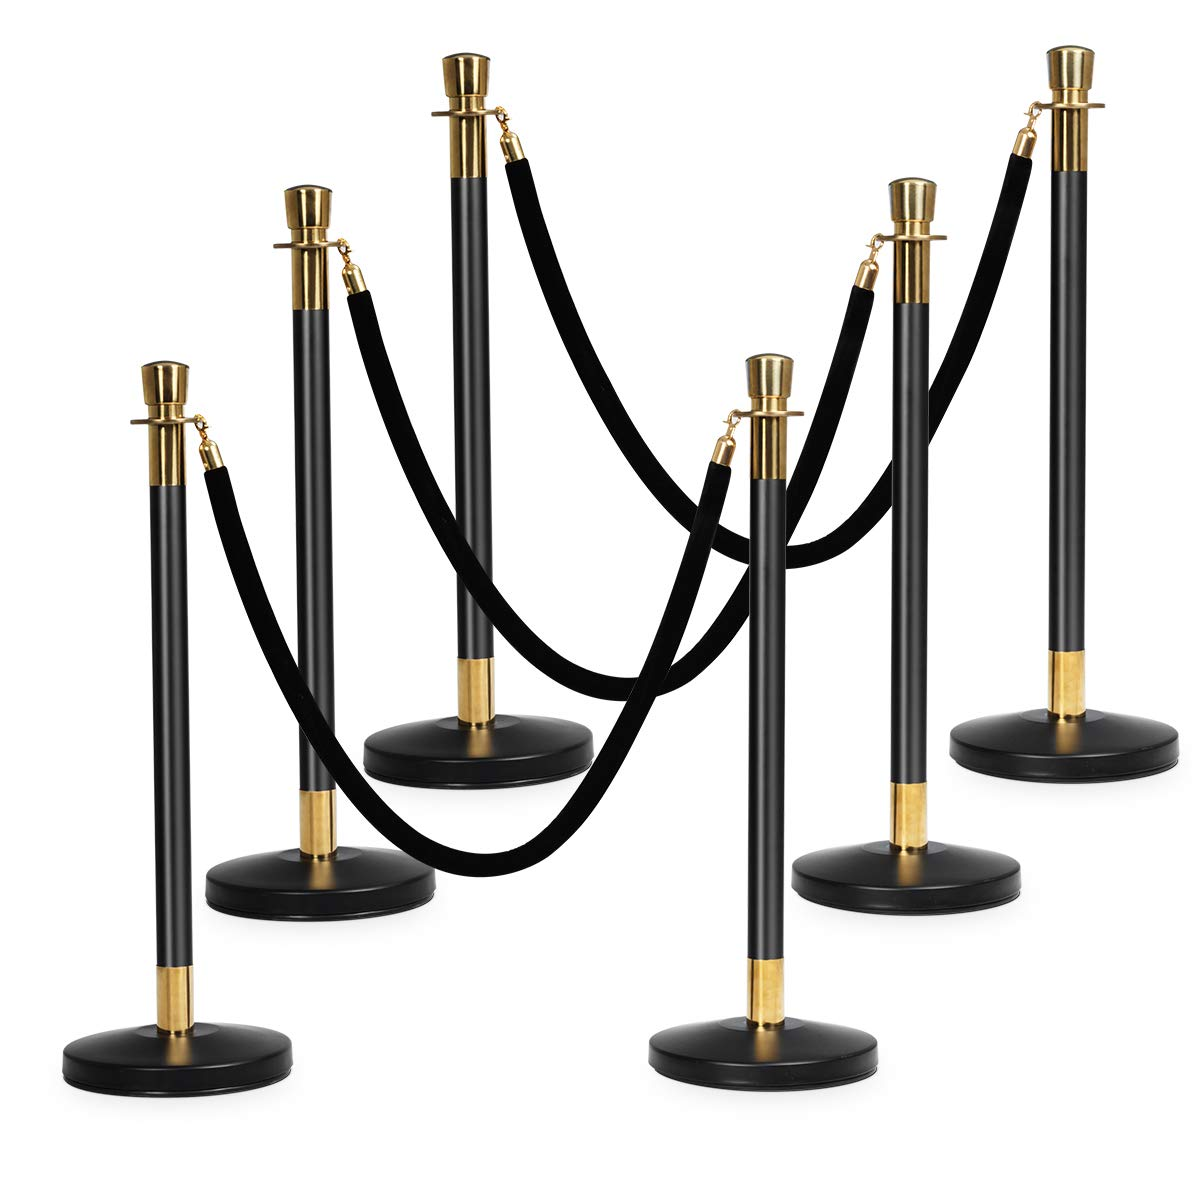 Goplus 6pcs Stanchion Set, Crowd Control Barrier Stainless Steel Stanchion Posts Queue Pole with 5Ft Velvet Rope, Suitable for Theaters, Party, Wedding Exhibition Centers, Ticket Offices (Black) by Goplus